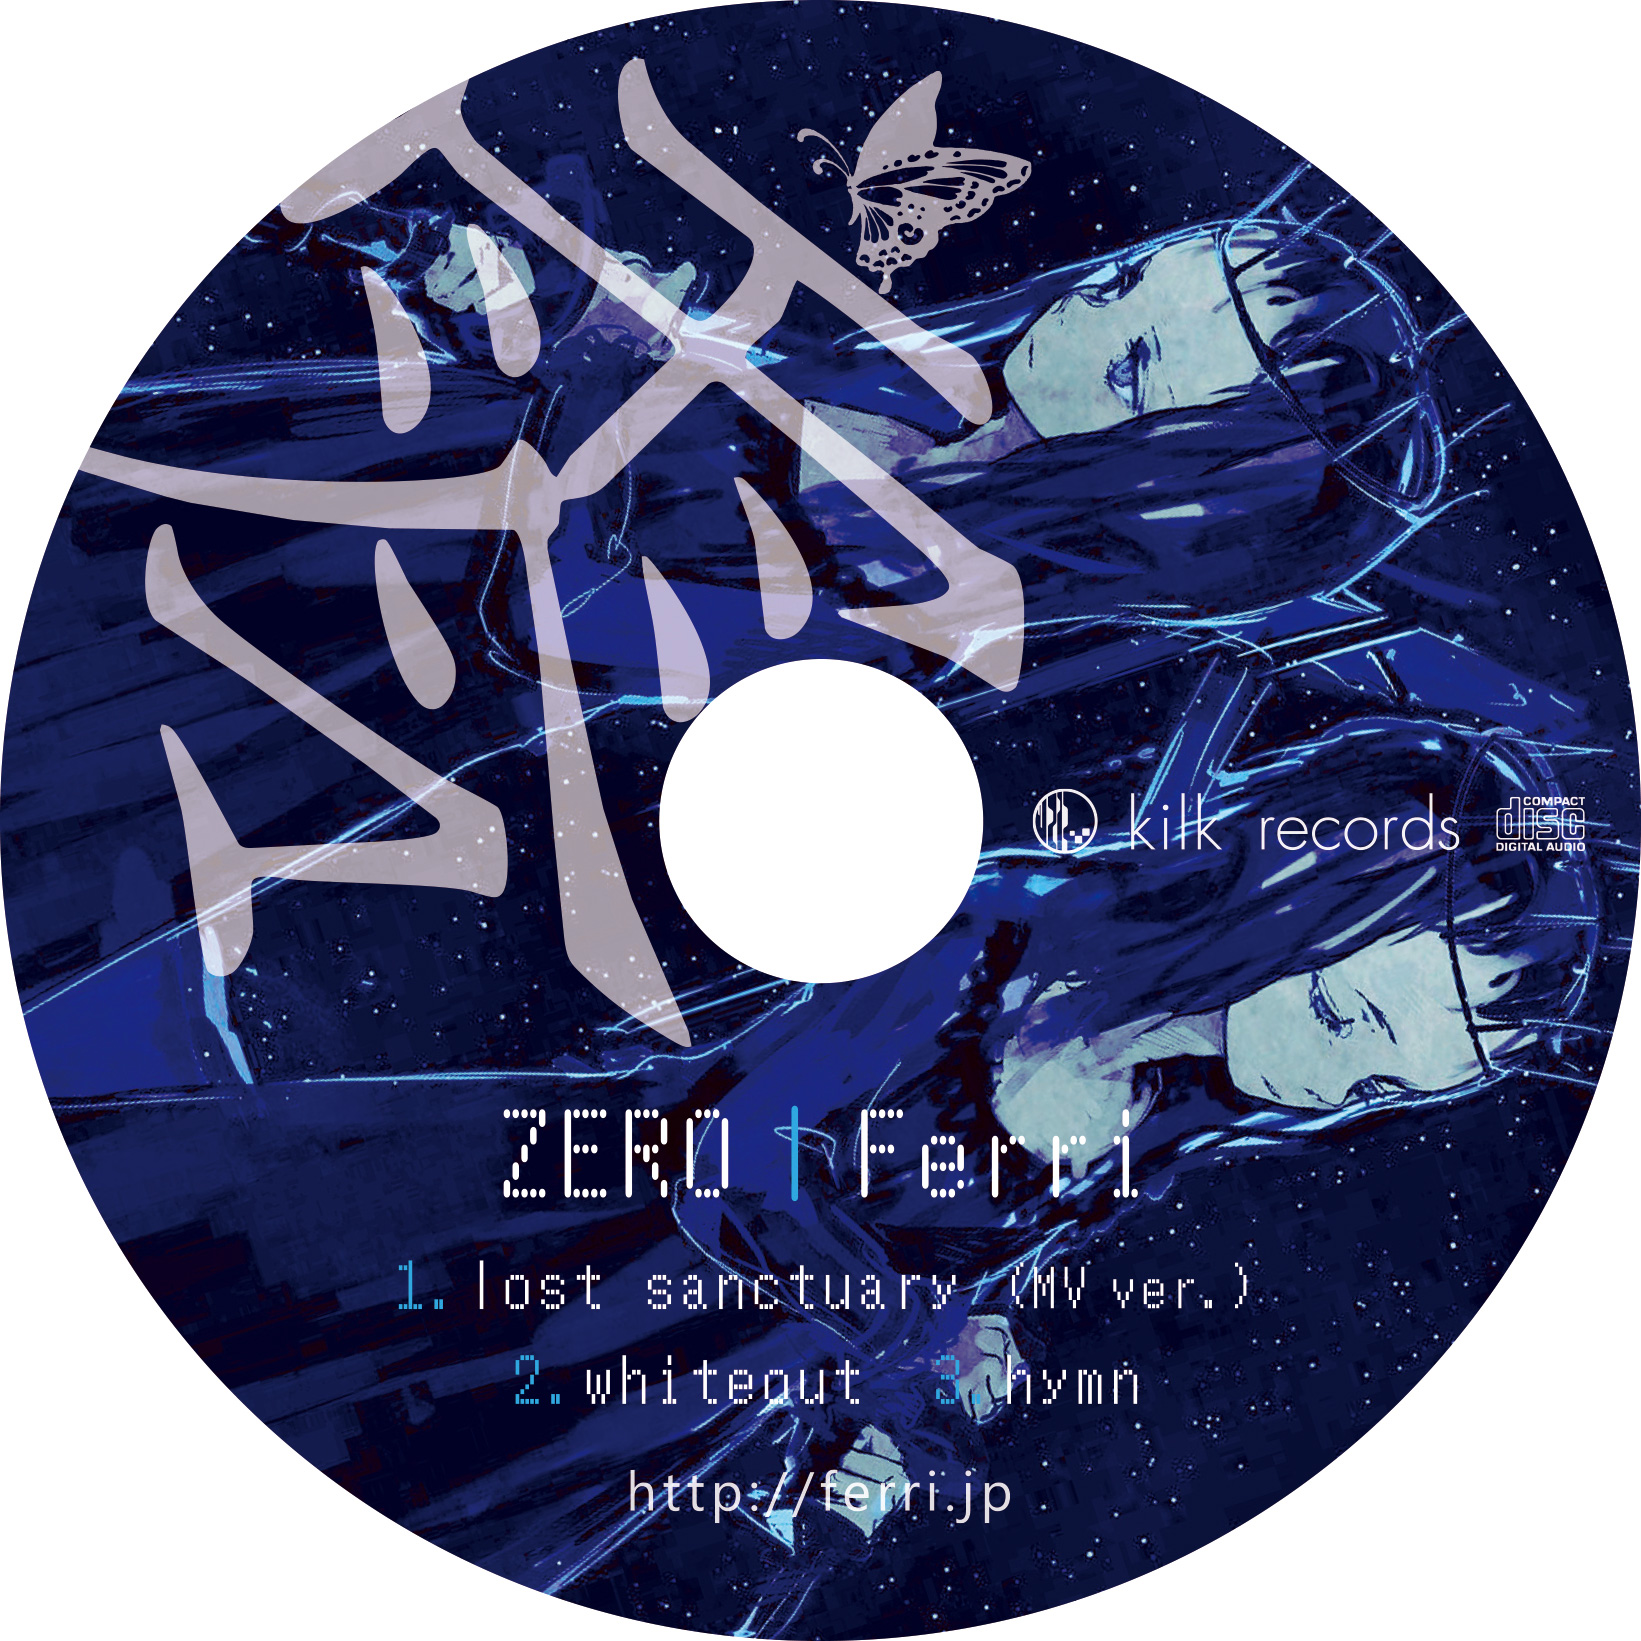 ferri_zero_label_0316